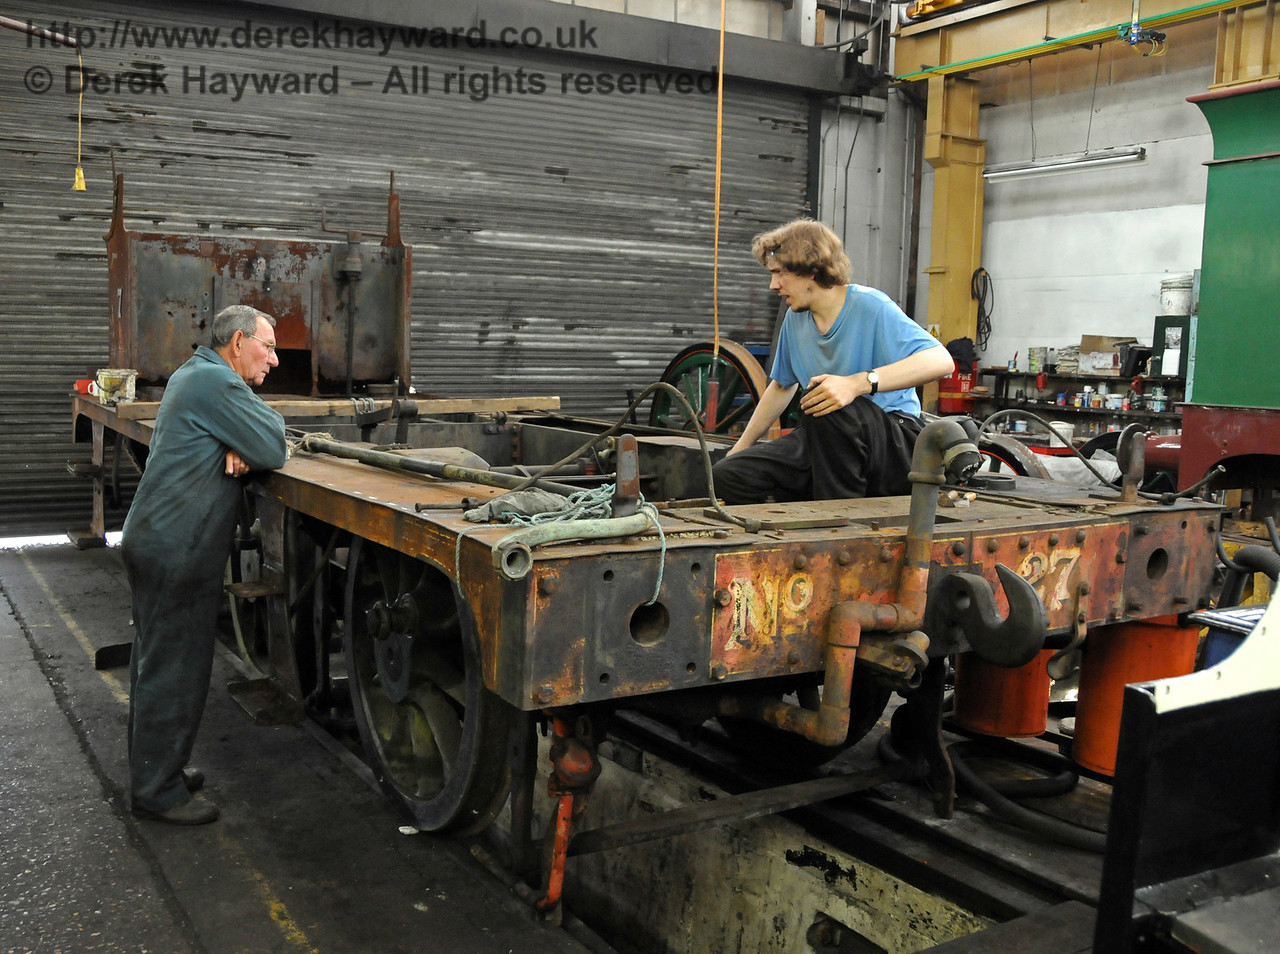 The cylinders in the frames from 27 were being assessed to establish their condition. It was early days, but the initial results were encouraging. The frames may be on display at the 50th Anniversary. Sheffield Park Workshops 25.07.2010  3399